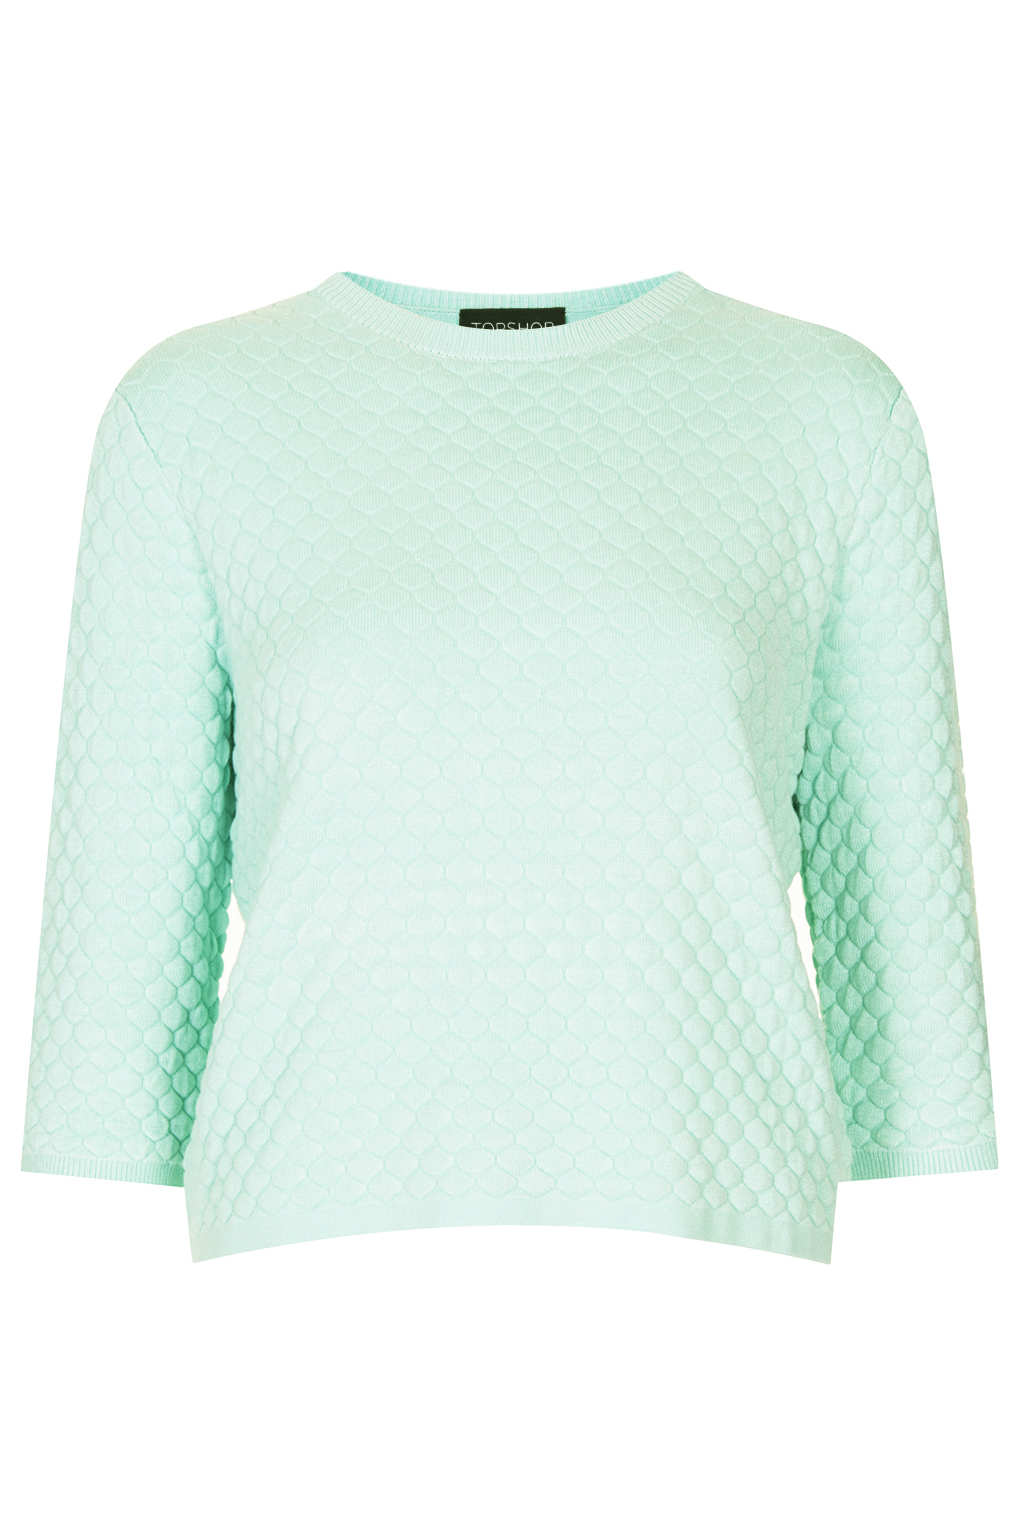 Lyst Topshop Knitted Quilted Jumper In Green